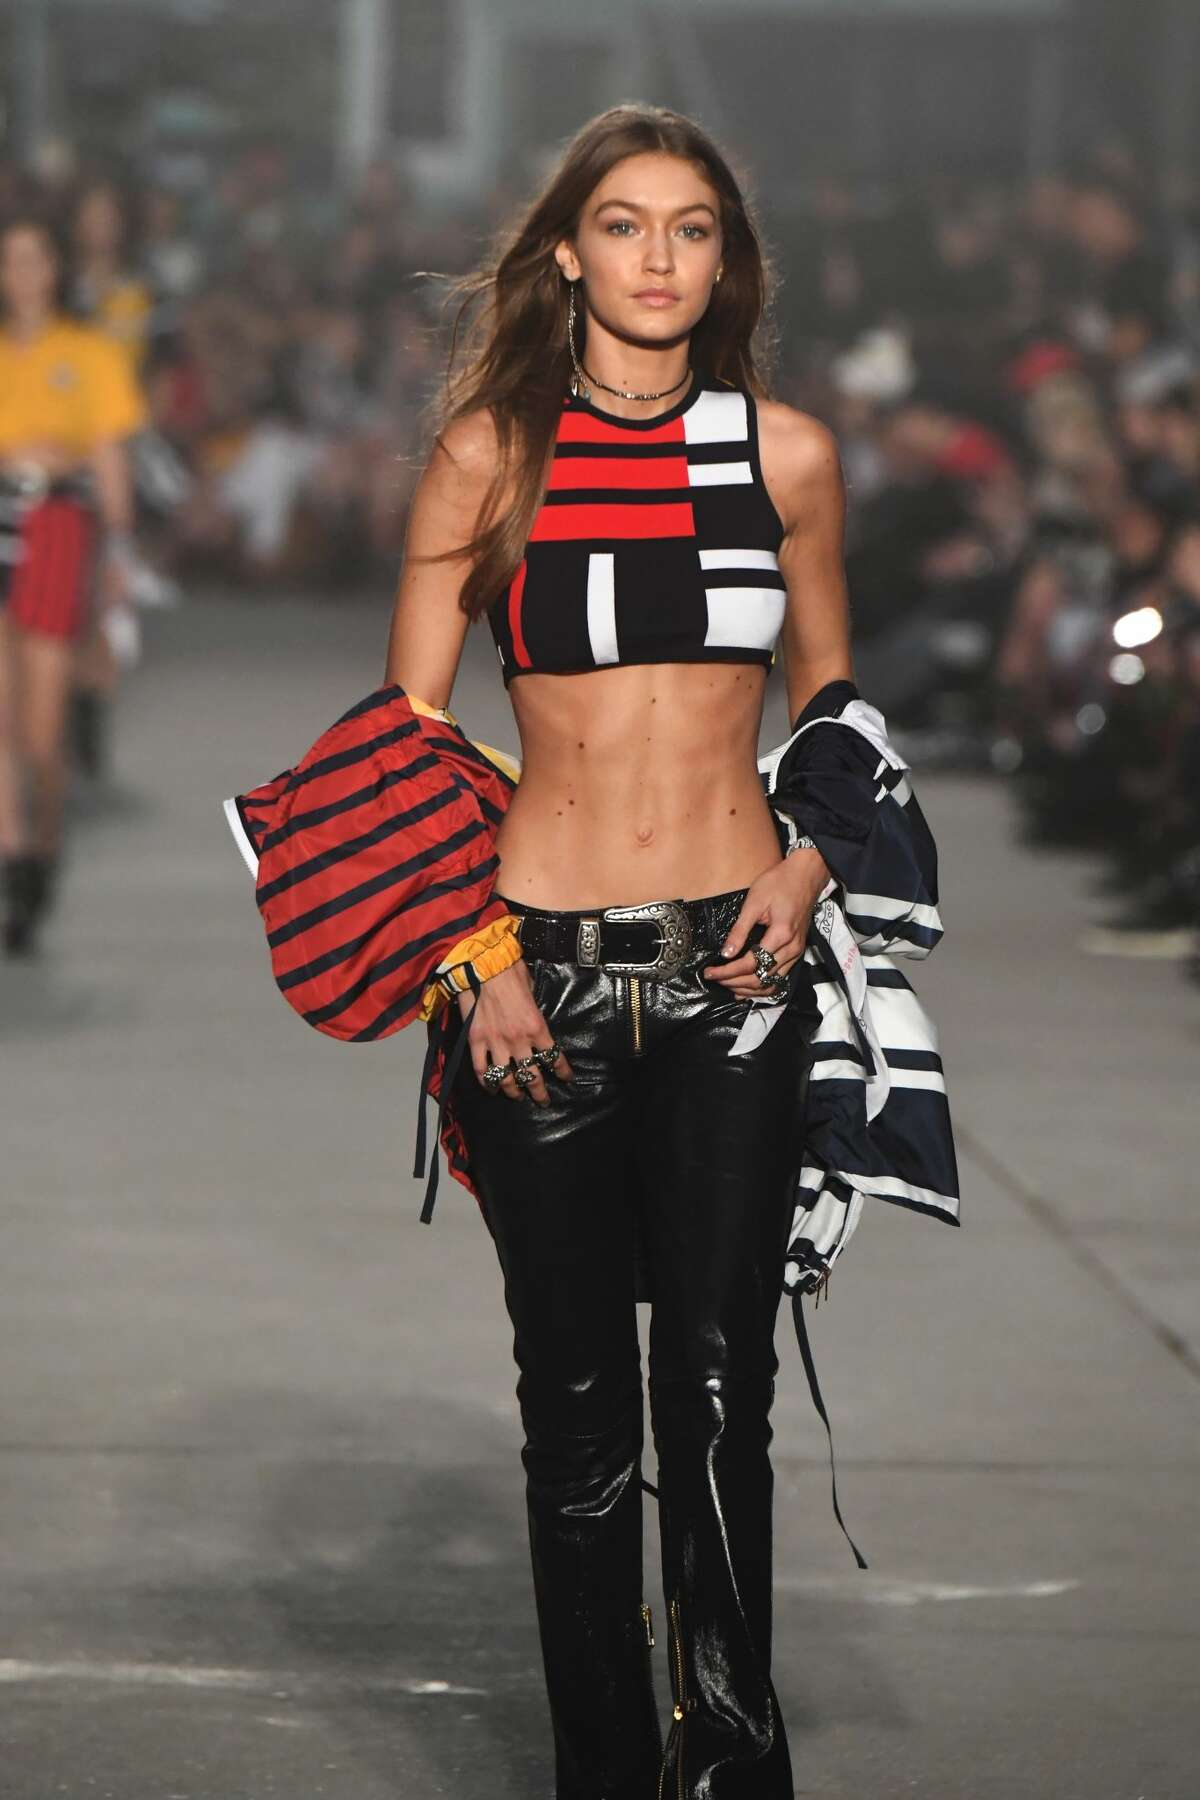 Model Gigi Hadid walks the runway at the TommyLand Tommy Hilfiger Spring 2017 Fashion Show. Keep clicking for more Gigi Hadid looks on the runway in 2017.